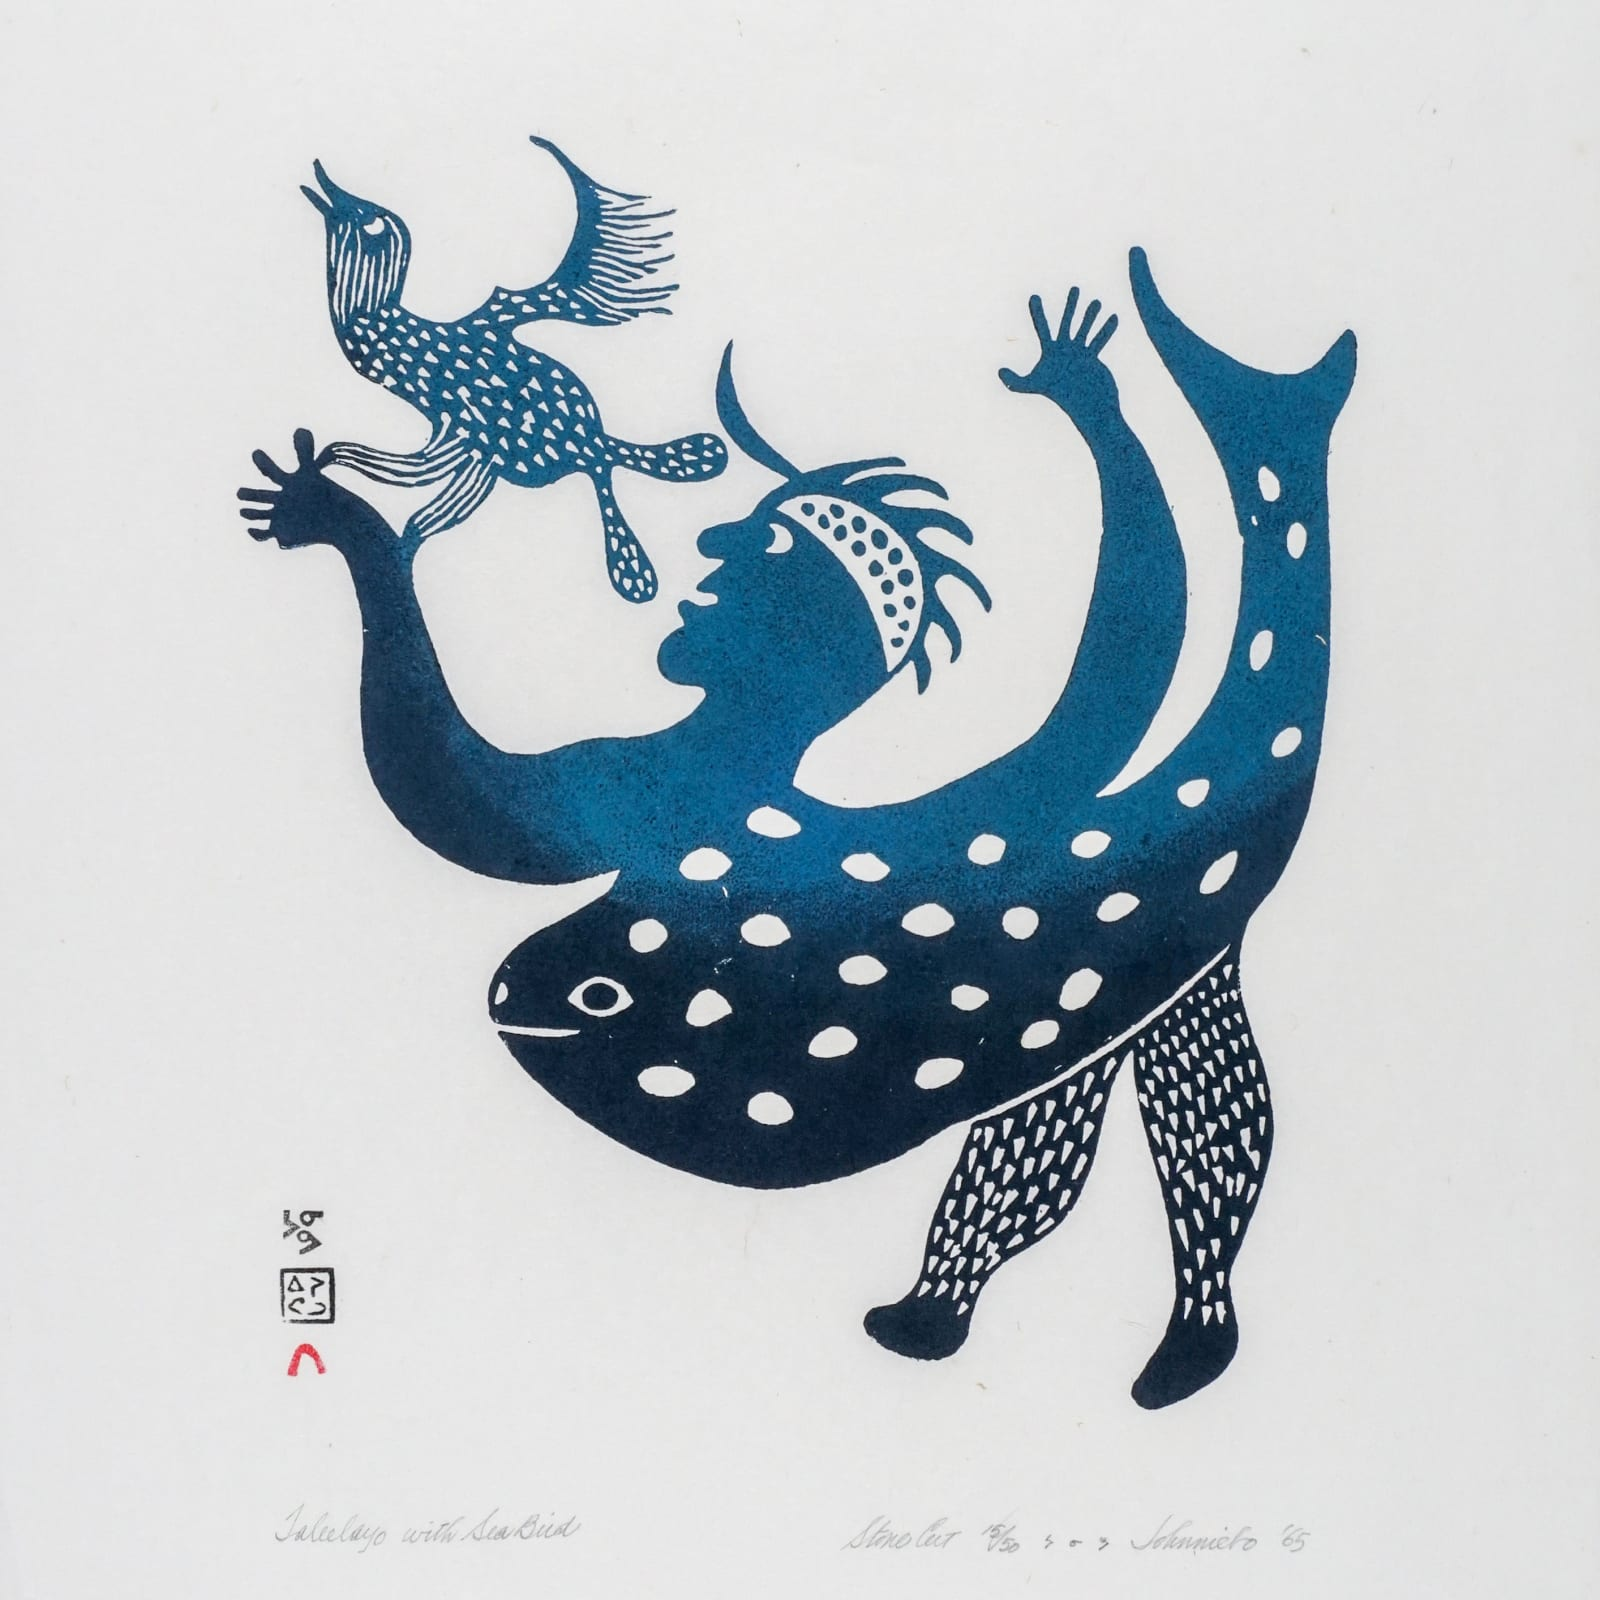 LOT 18  JOHNNIEBO ASHEVAK (1923-1972) KINNGAIT (CAPE DORSET) Taleelayo with Sea Bird, 1965 stonecut, 25 x 17 in (63.5 x 43.2 cm)  ESTIMATE: $600 — $900  PRICE REALIZED: $1,680